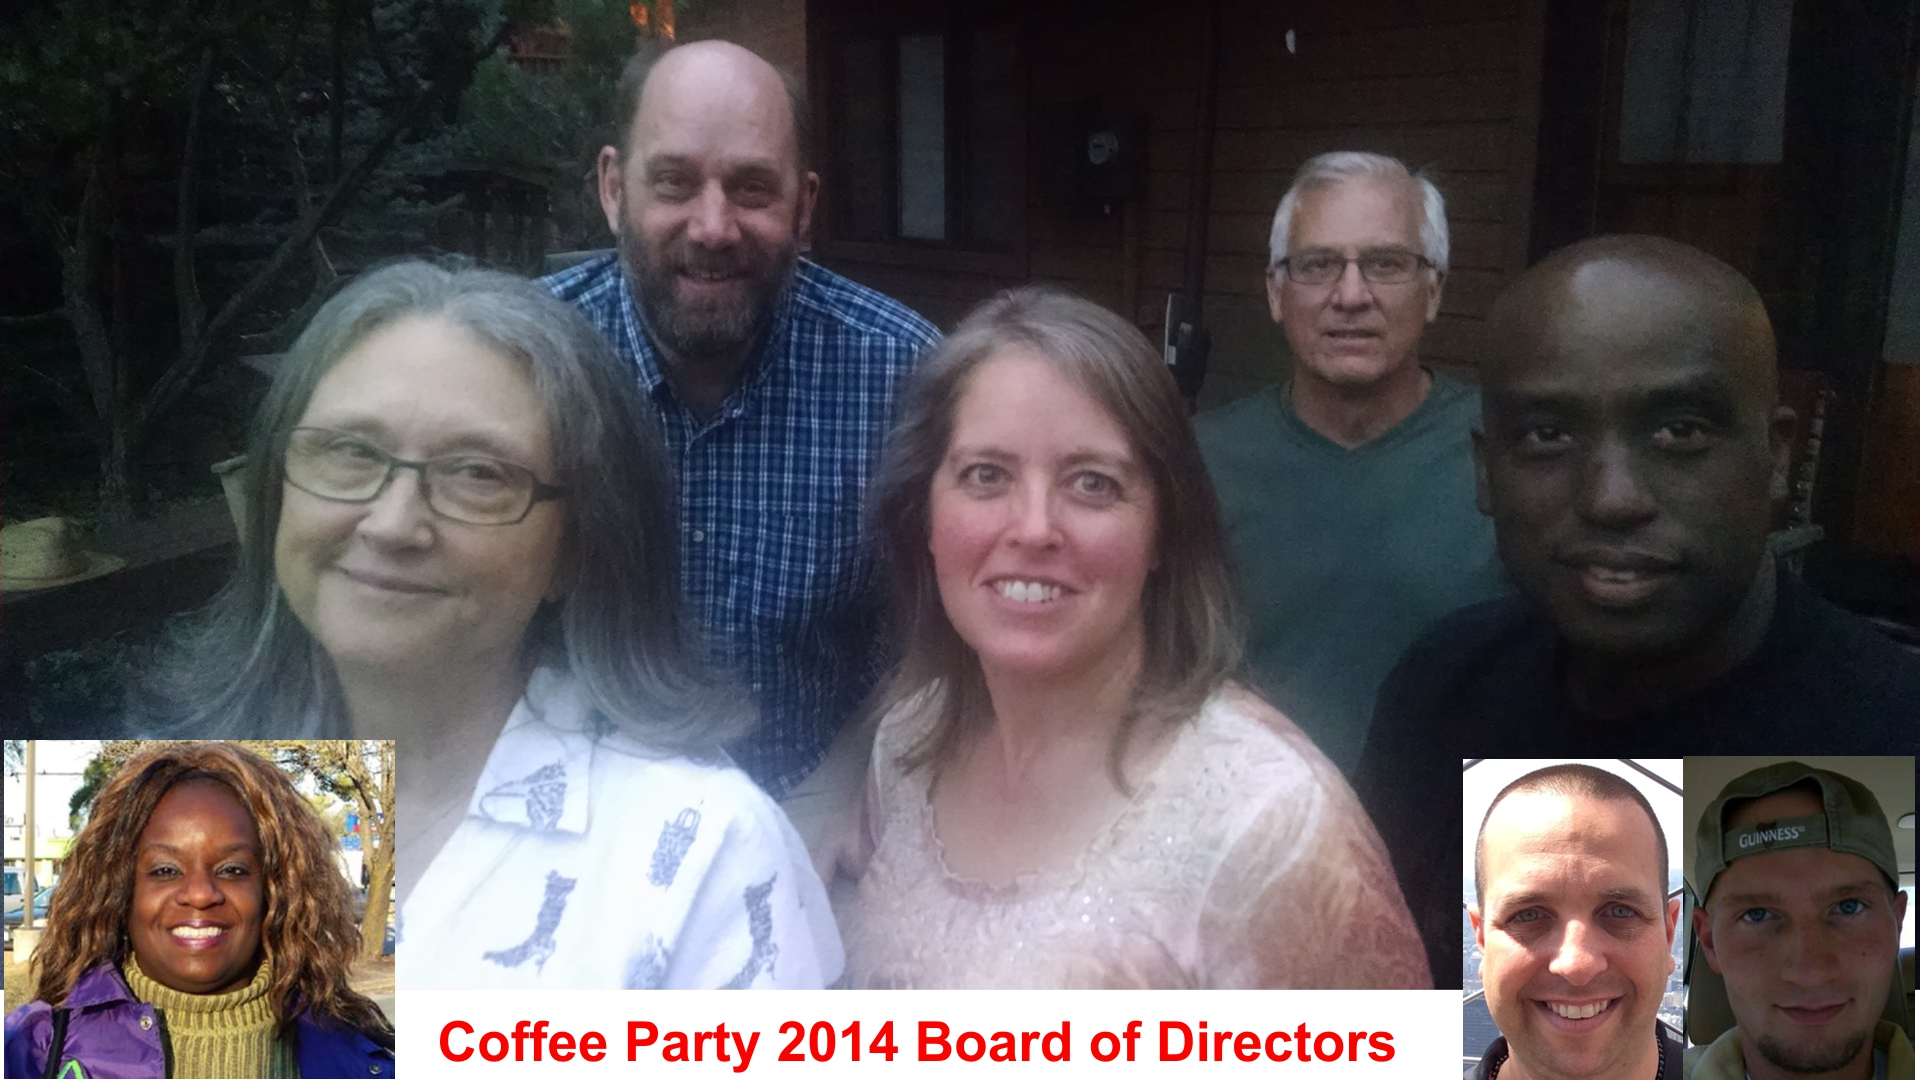 Coffee Party Board of Directors